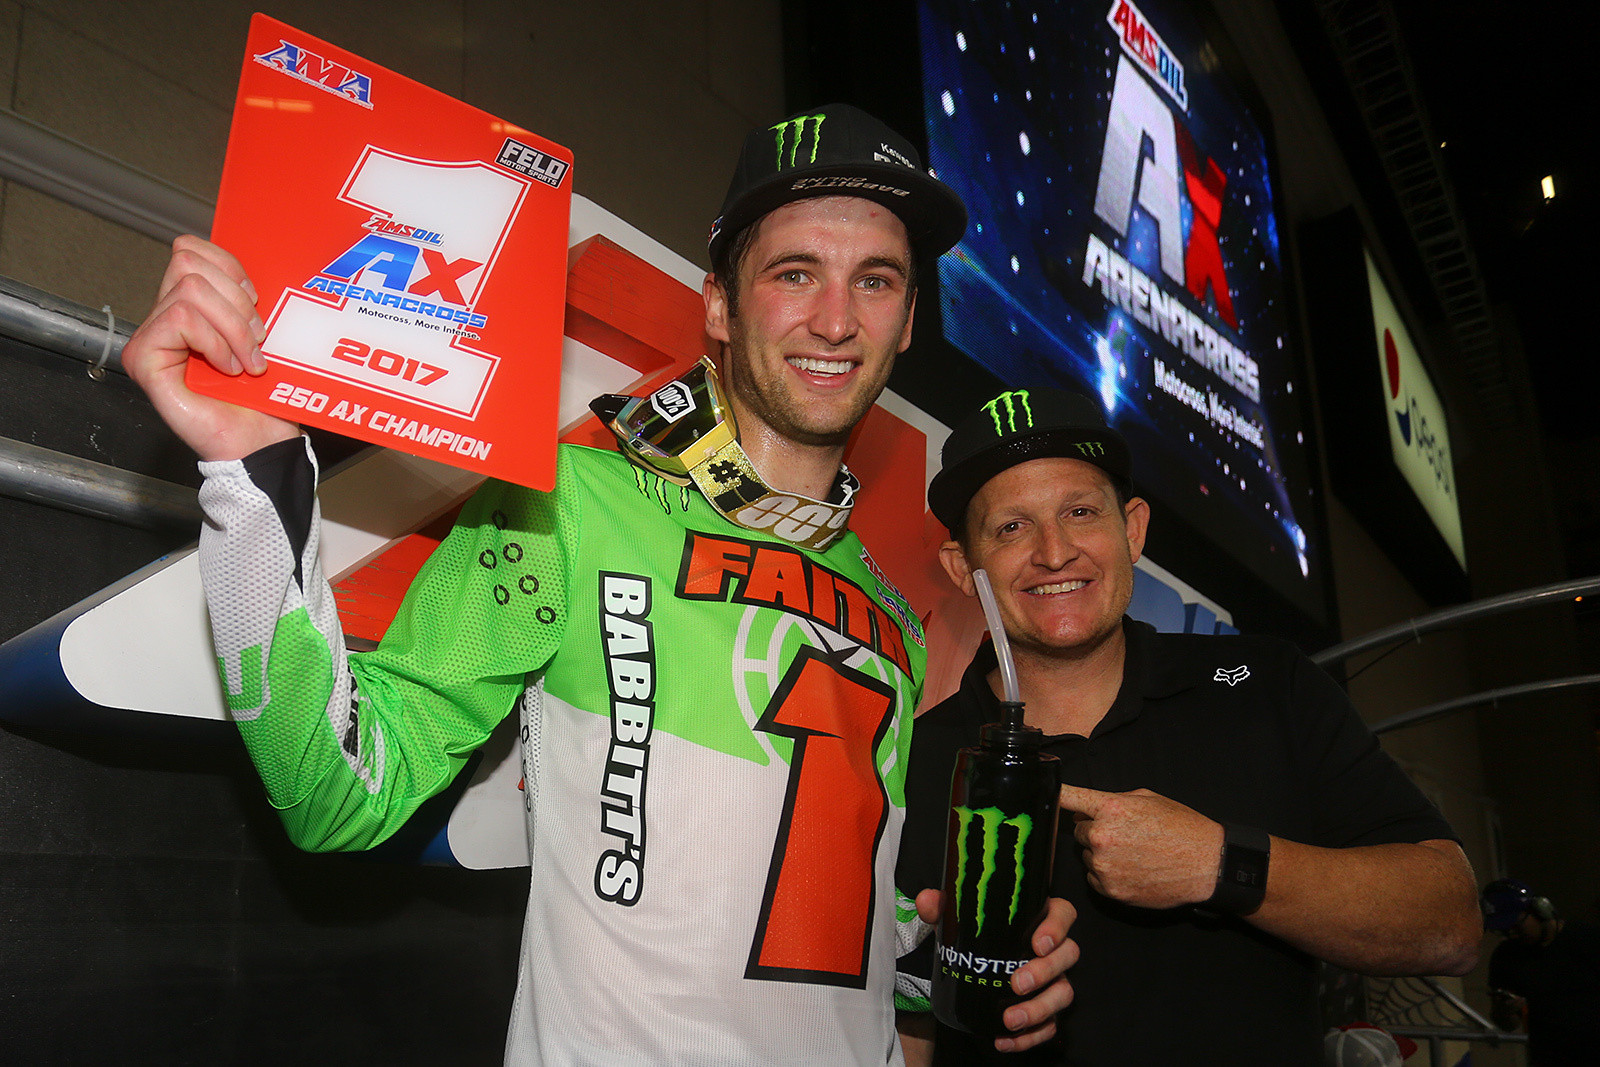 Gavin Faith took home the Ricky Carmichael Cup again, for winning his second straight Arenacross title.